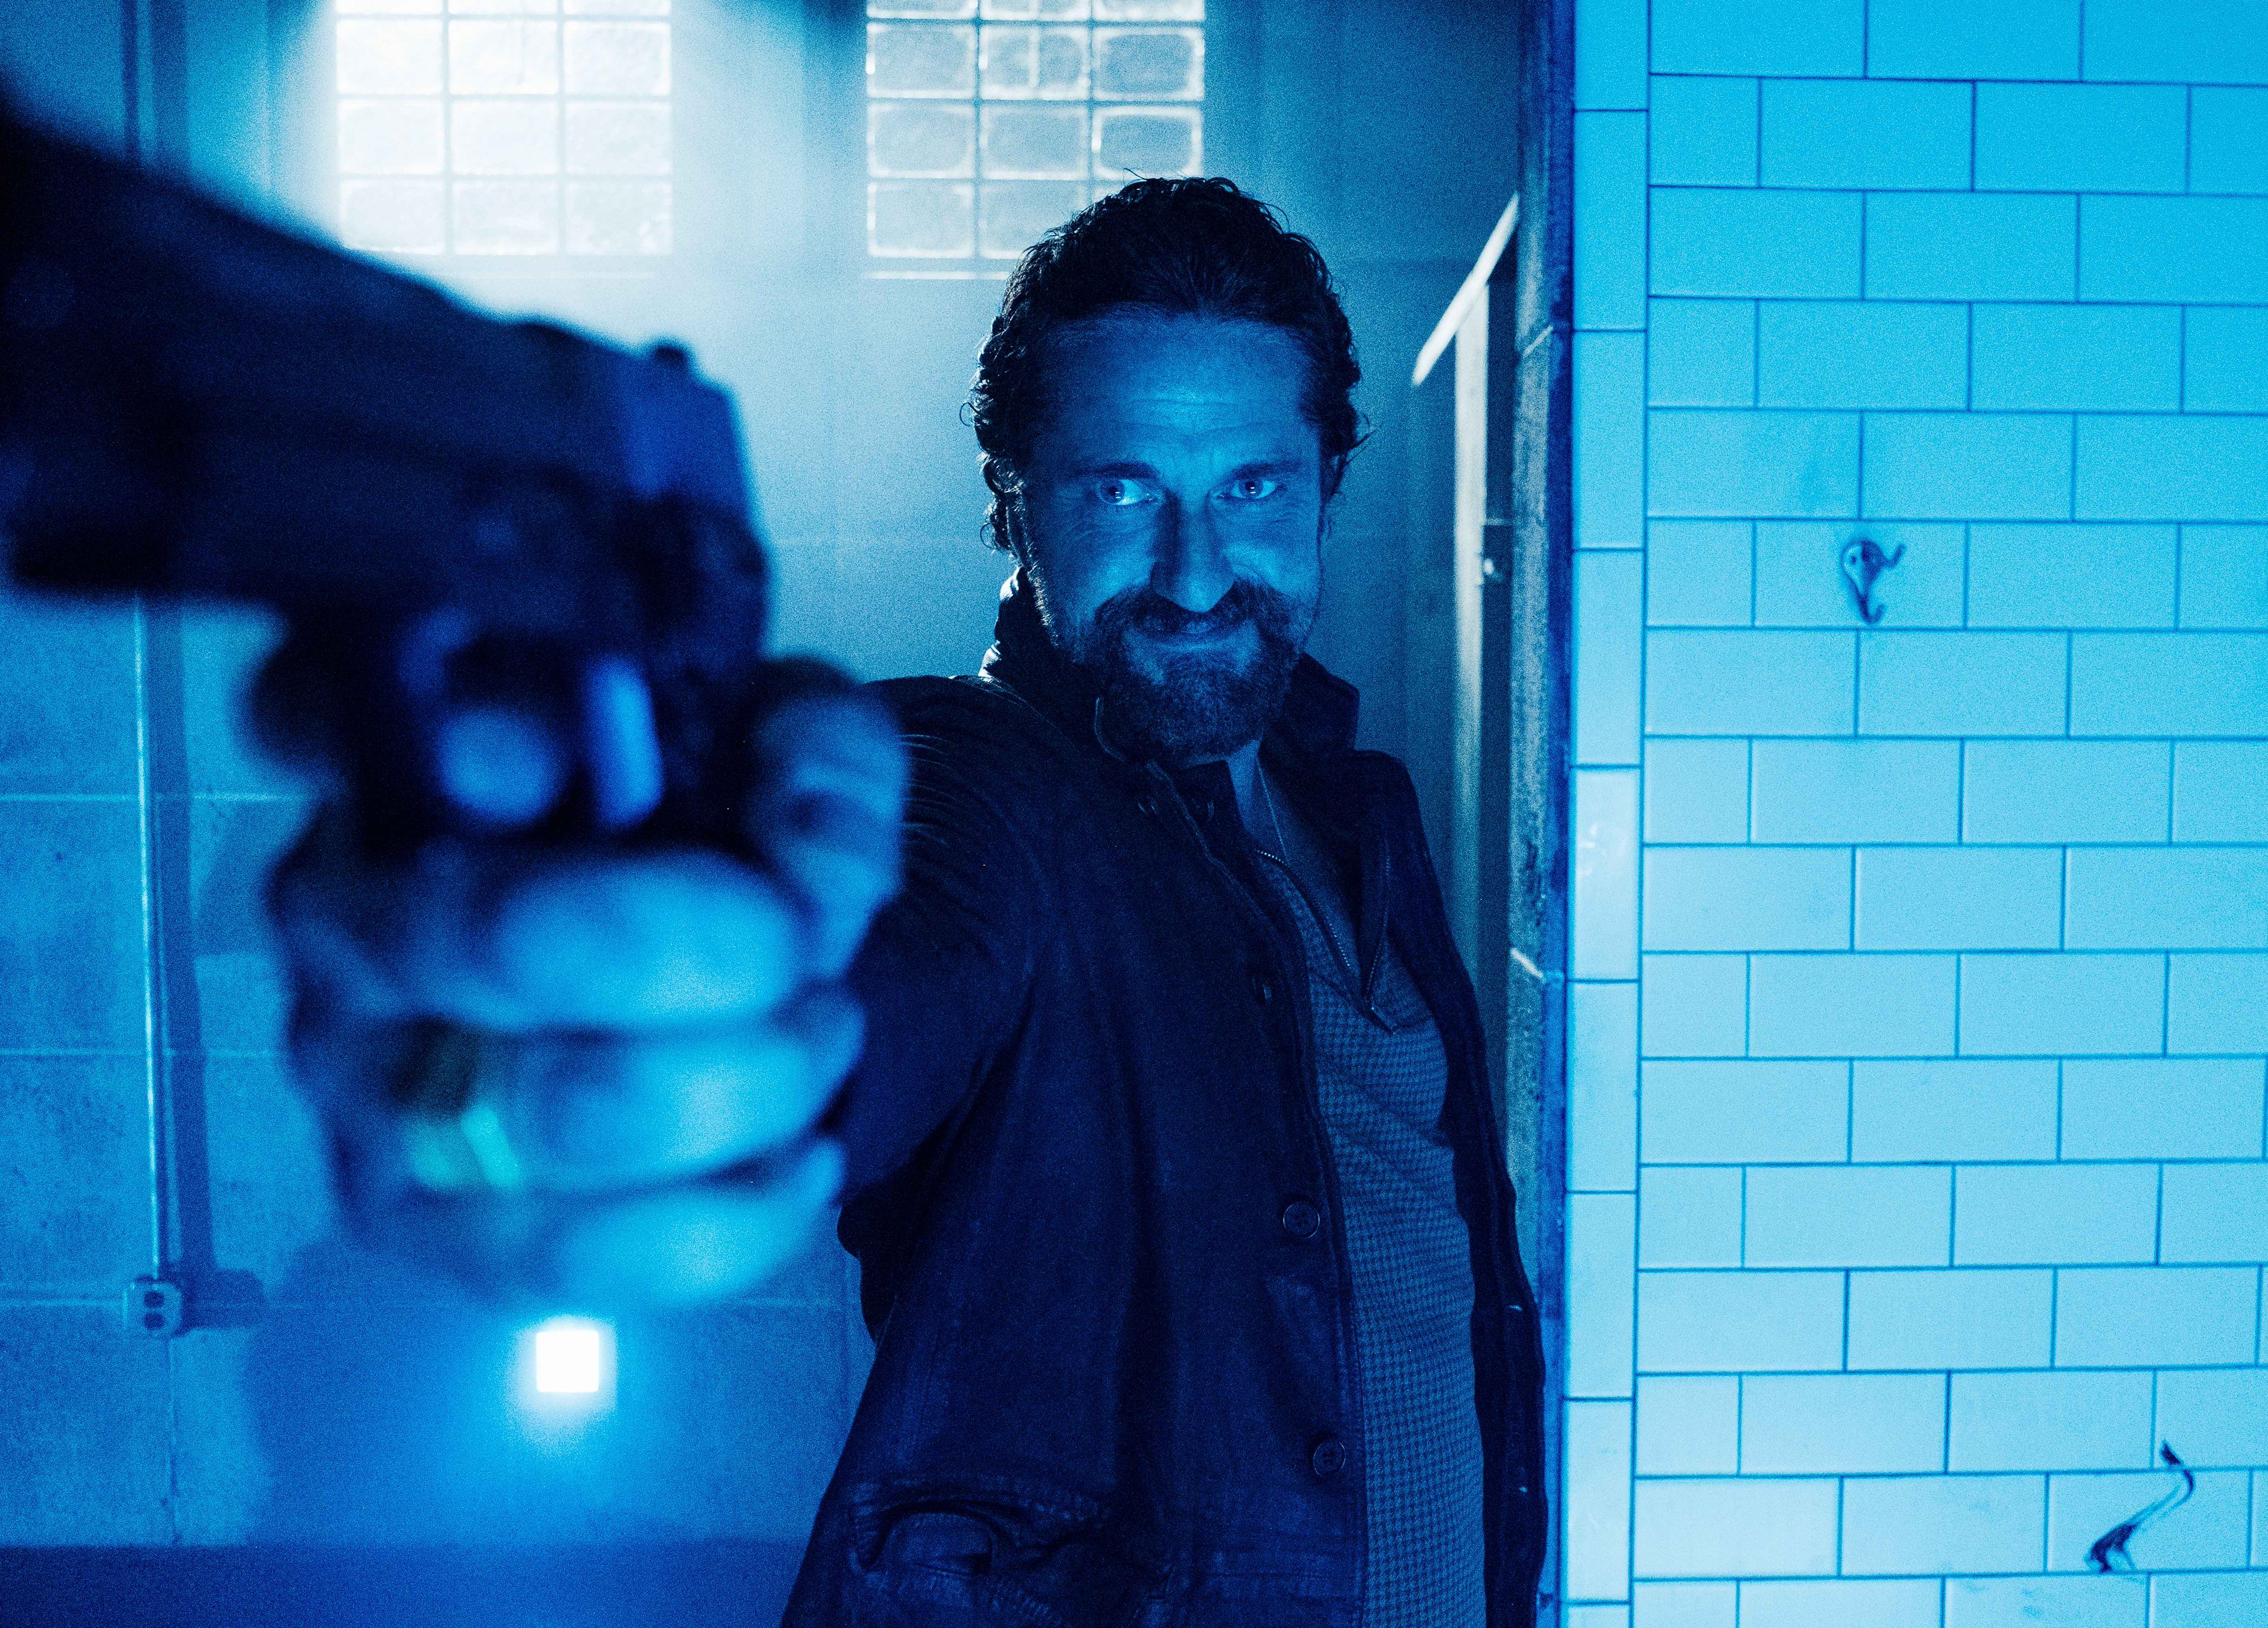 Open Road Films have released the official trailer for the upcoming action thriller Copshop.